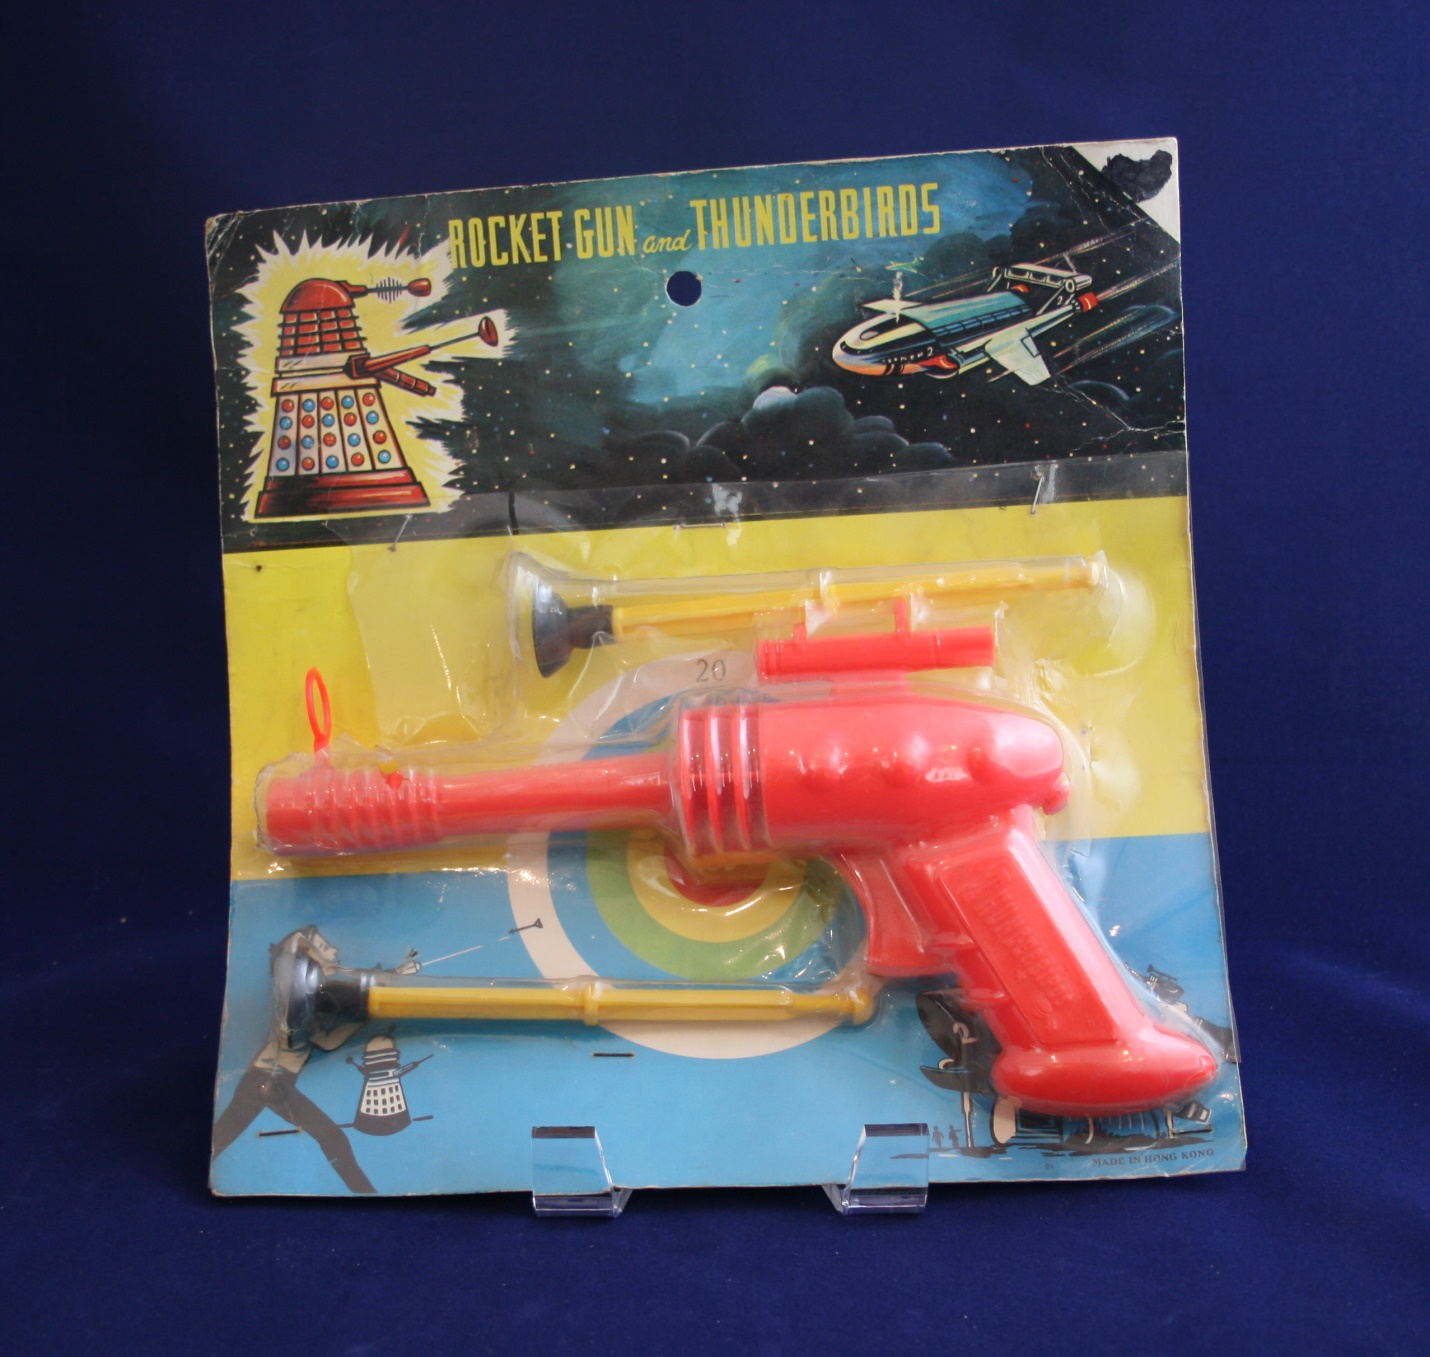 Unlicensed Dutch Rocket Gun and Thunderbirds, with Dalek image